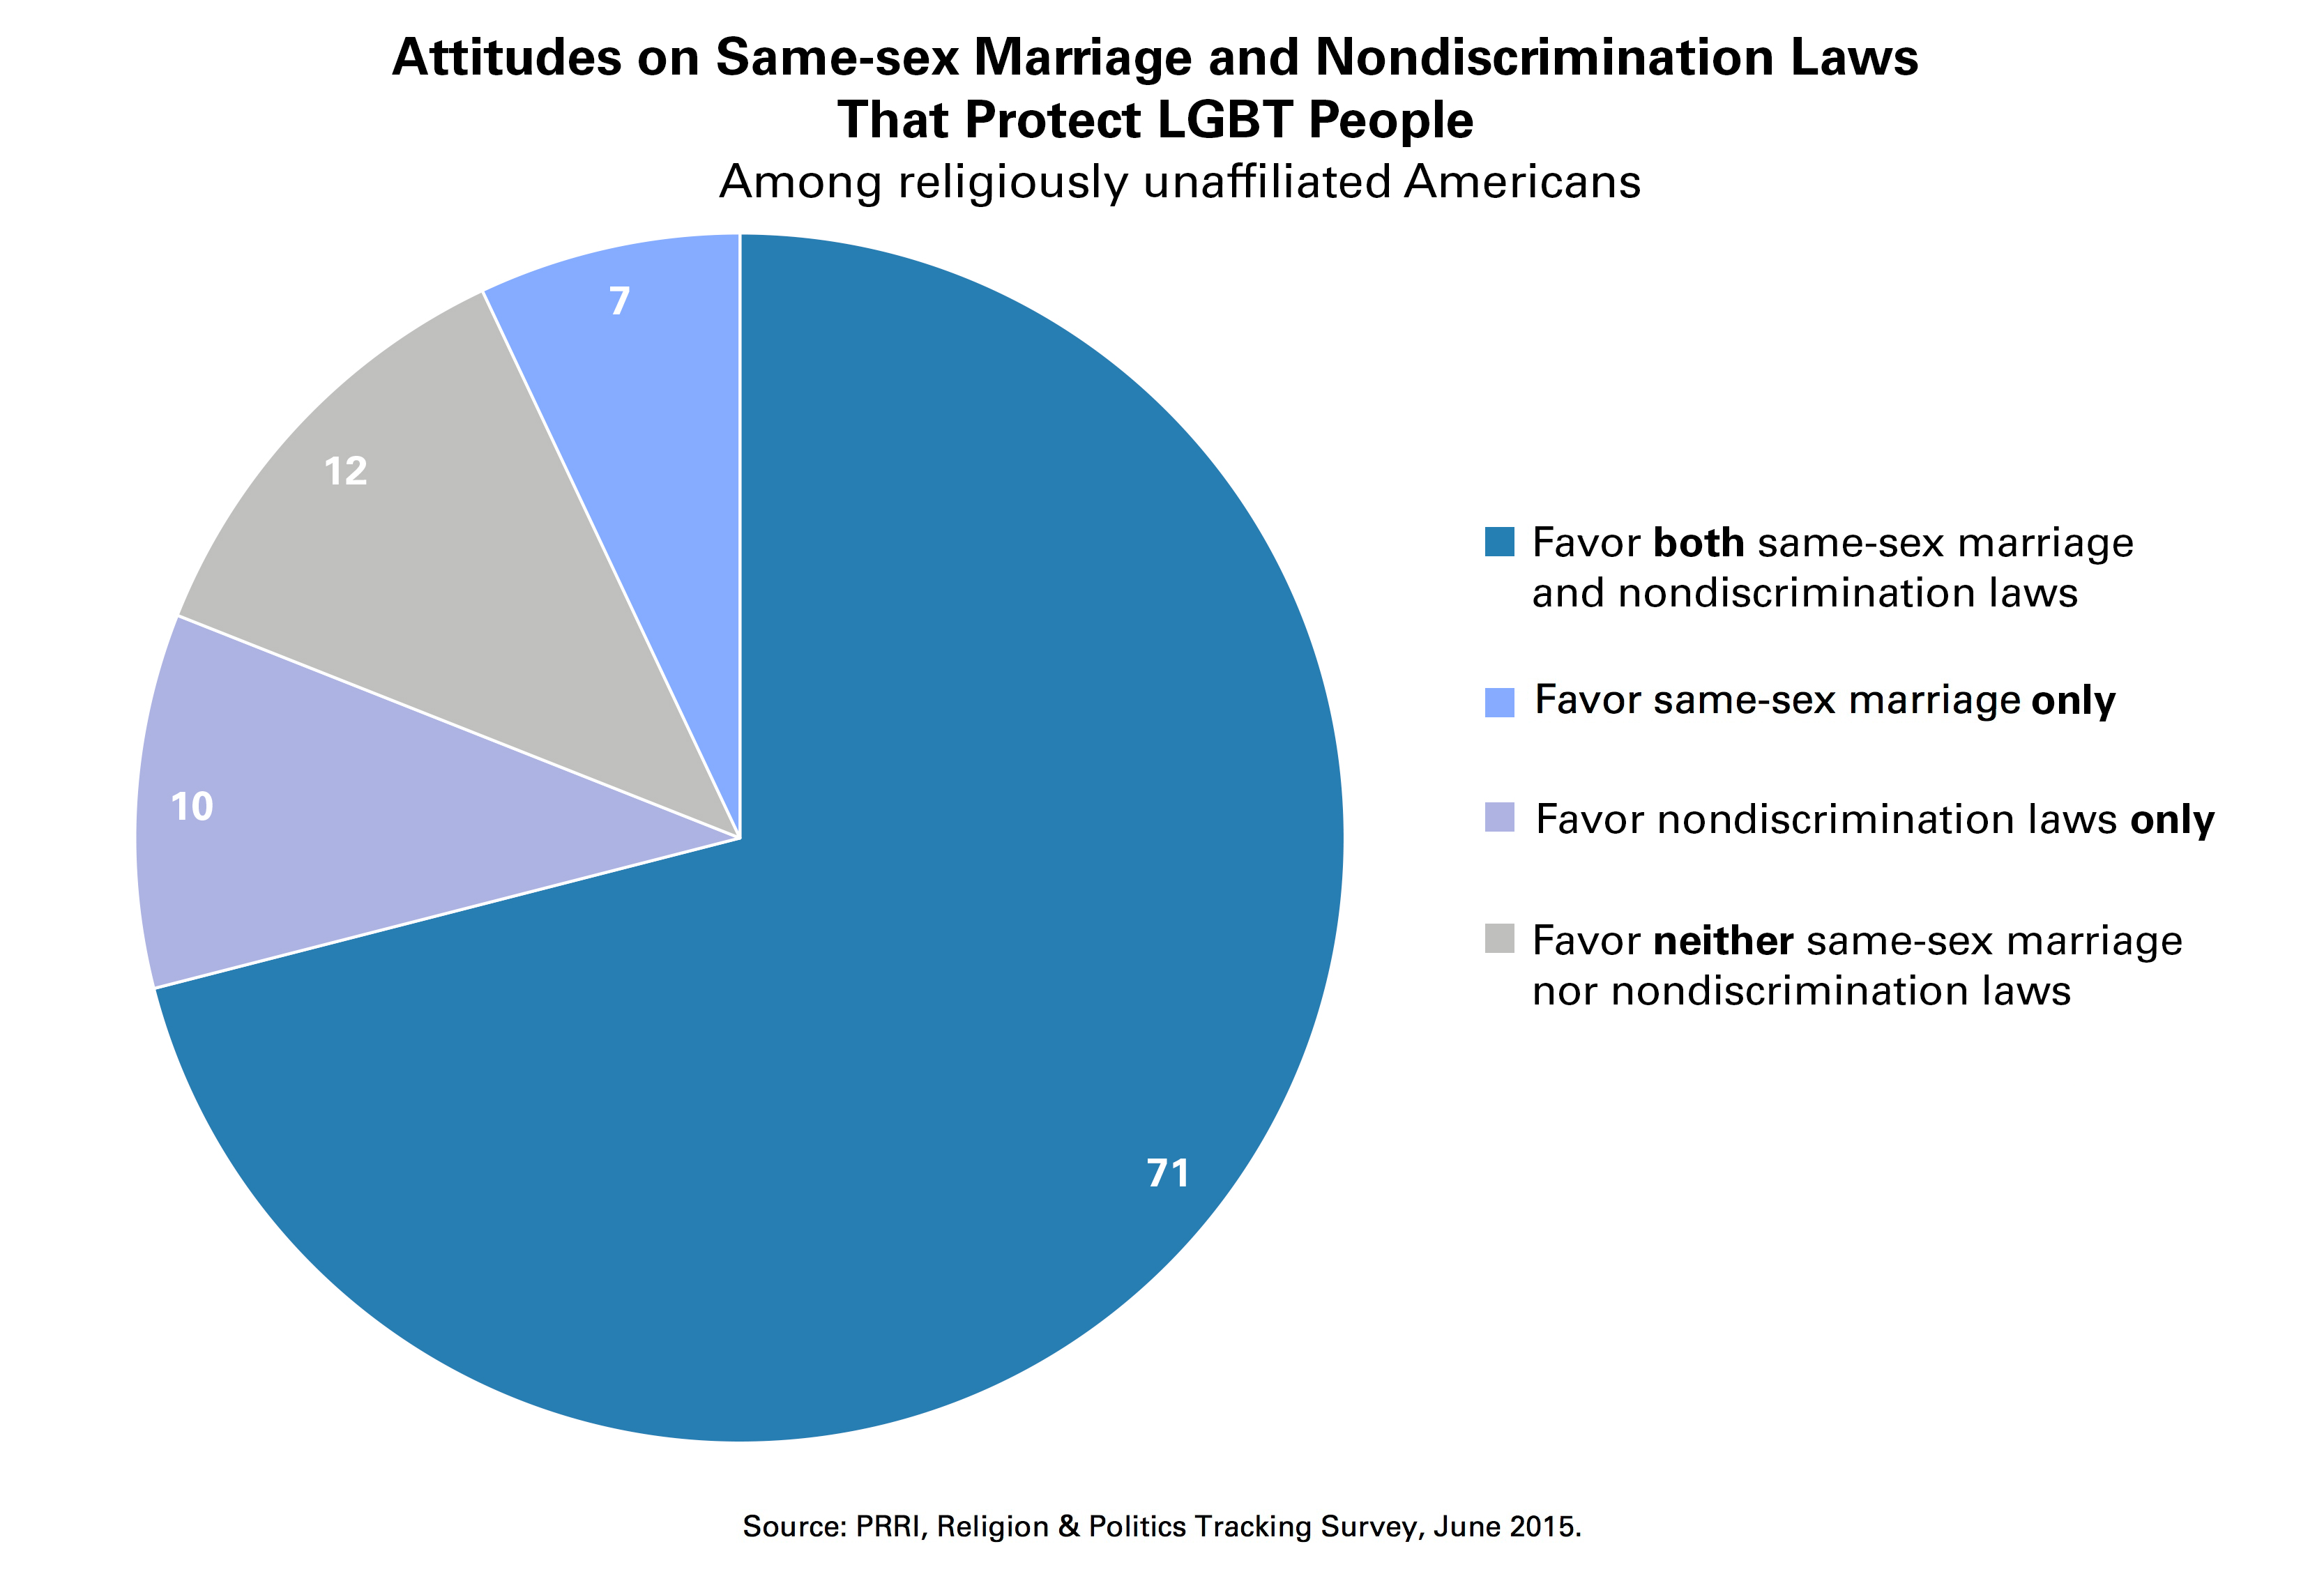 prri ssm and anti discrimination opinion unaffiliated